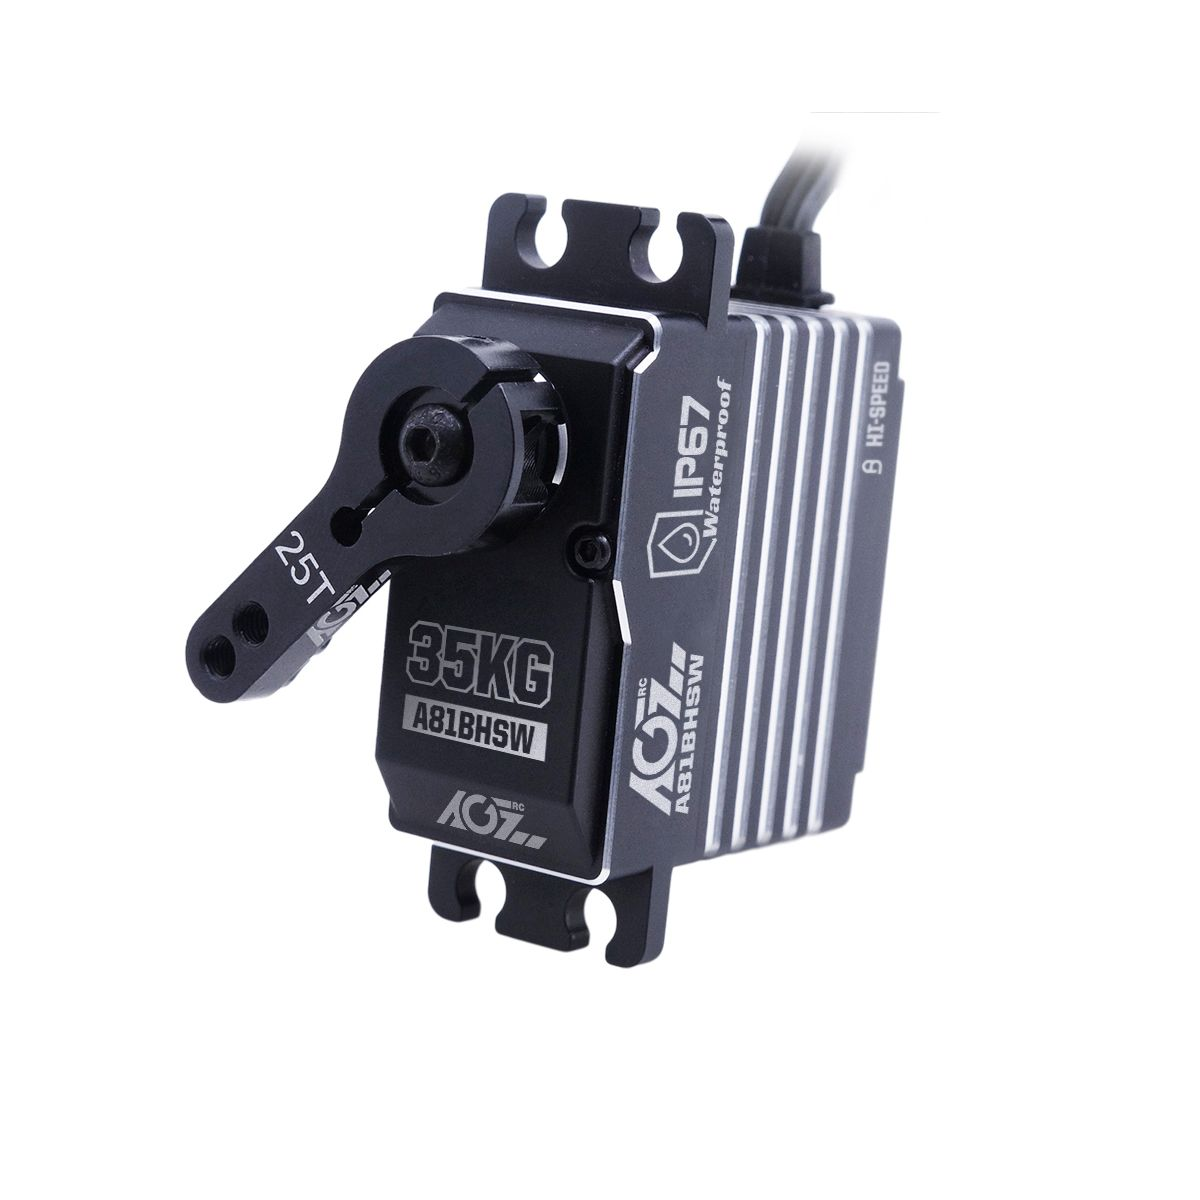 AGFRC A81BHSW 0.075s High Speed STD Size Steel Gear Programmable Brushless Extra Strong 35KG Waterproof Servo For 1/8 RC 4WD Car